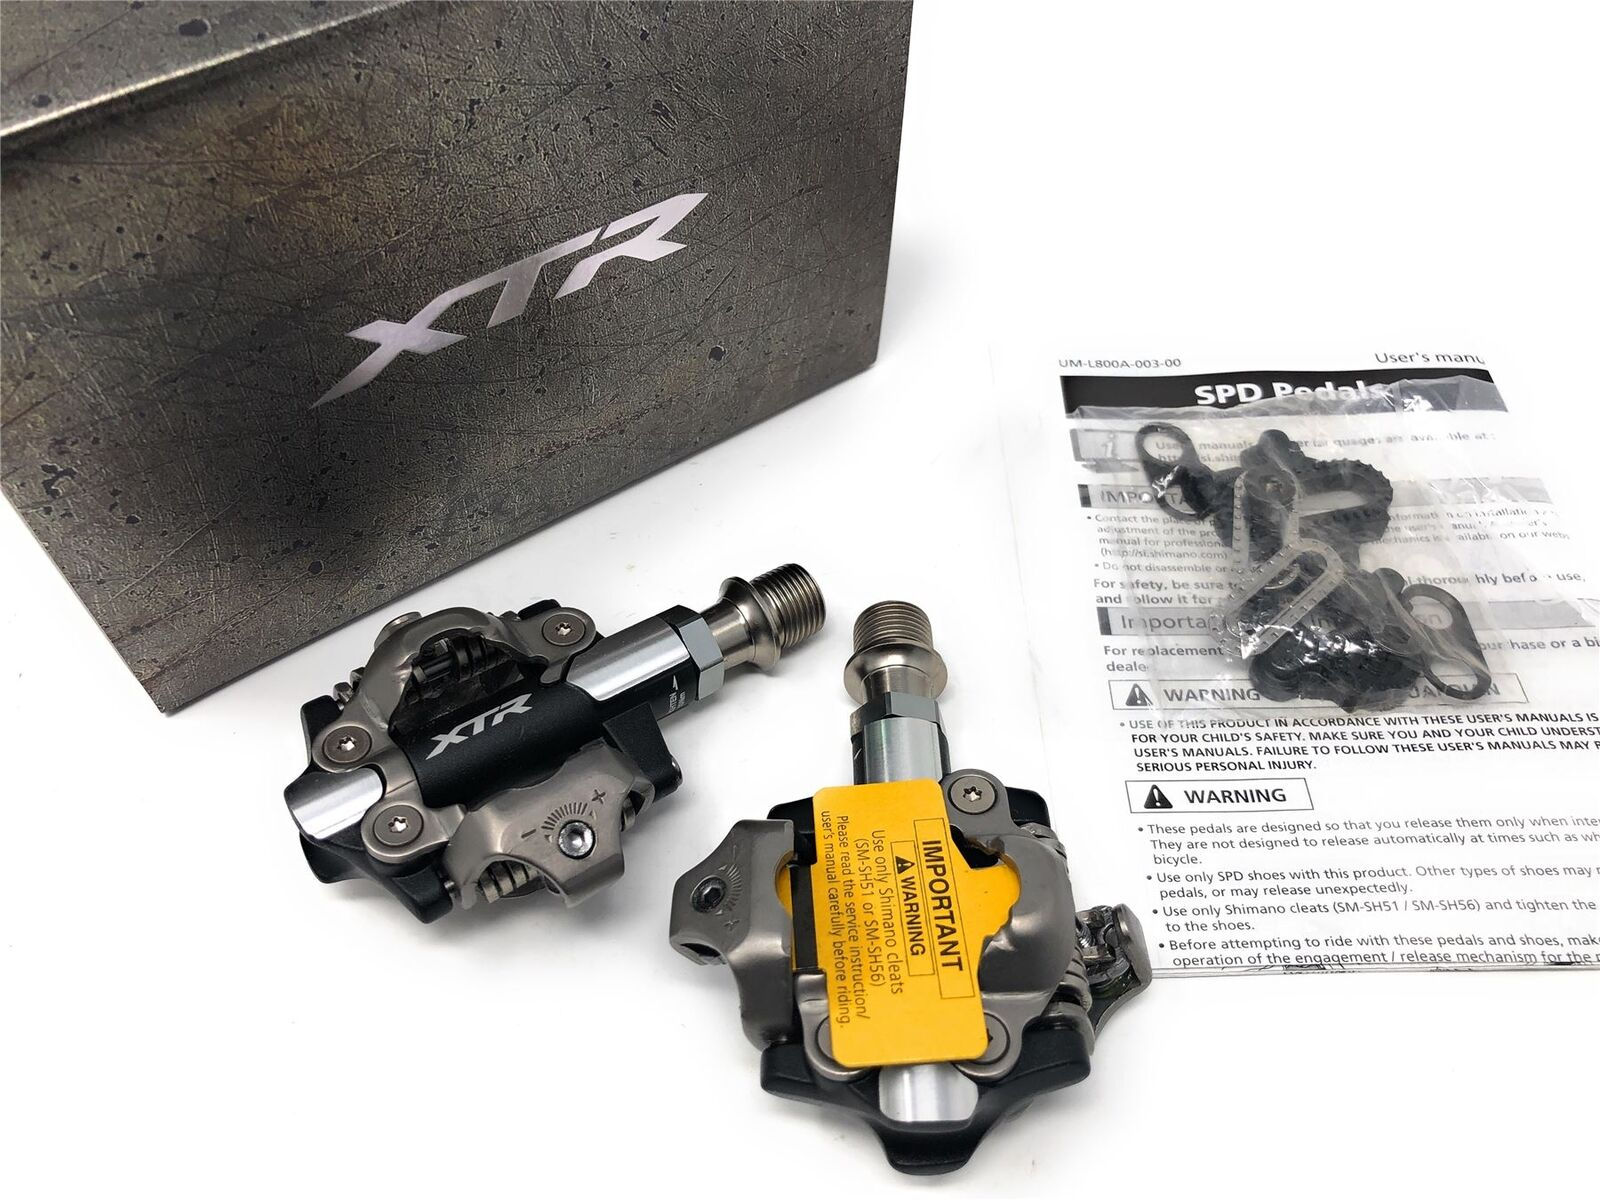 NEW Shimano XTR PD-M9100 S1 Race  XC SPD MTB Bike Pedals -3mm @ 52 mm Axle Cleats  brand on sale clearance